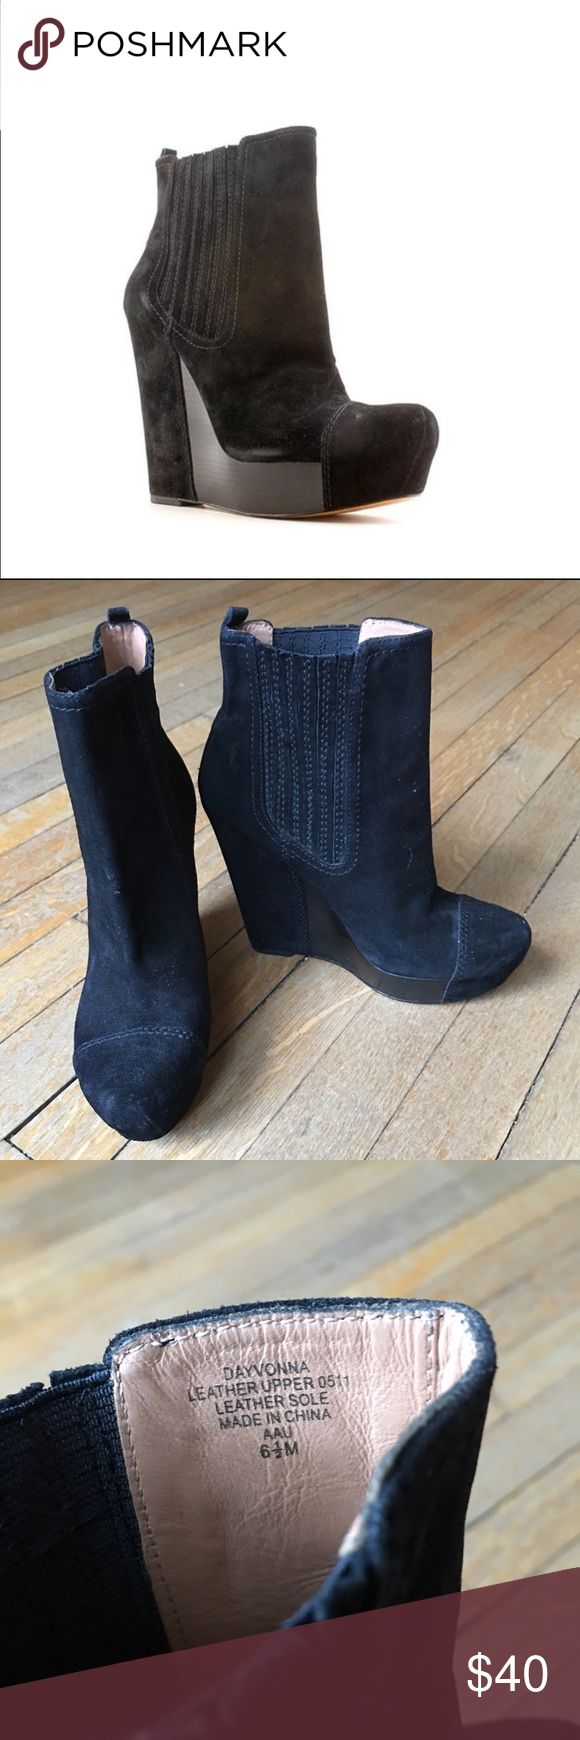 Joan & David Dayvonna ankle boots. Joan & David Dayvonna black suede ankle boots, in good pre-owned condition. Worn once. Joan & David Shoes Ankle Boots & Booties